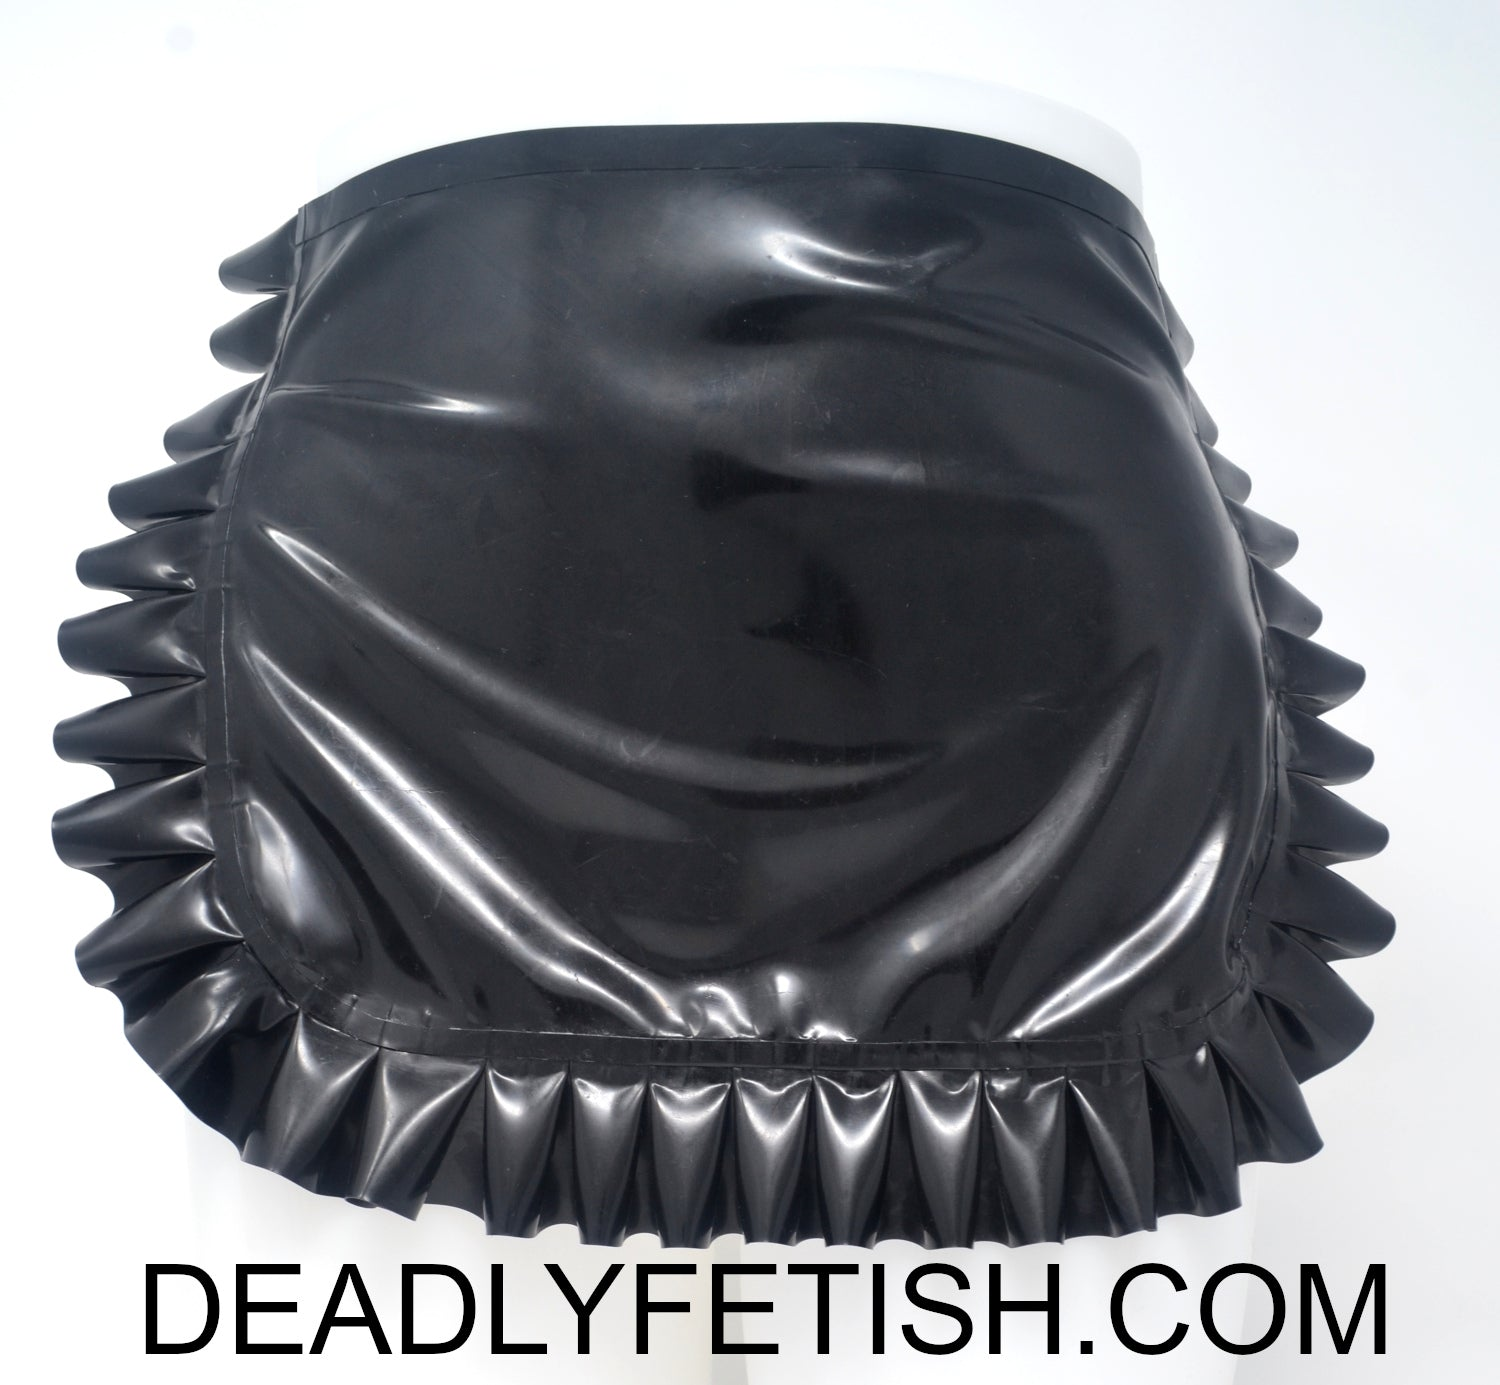 Deadly Fetish Instock Latex: Maid Apron